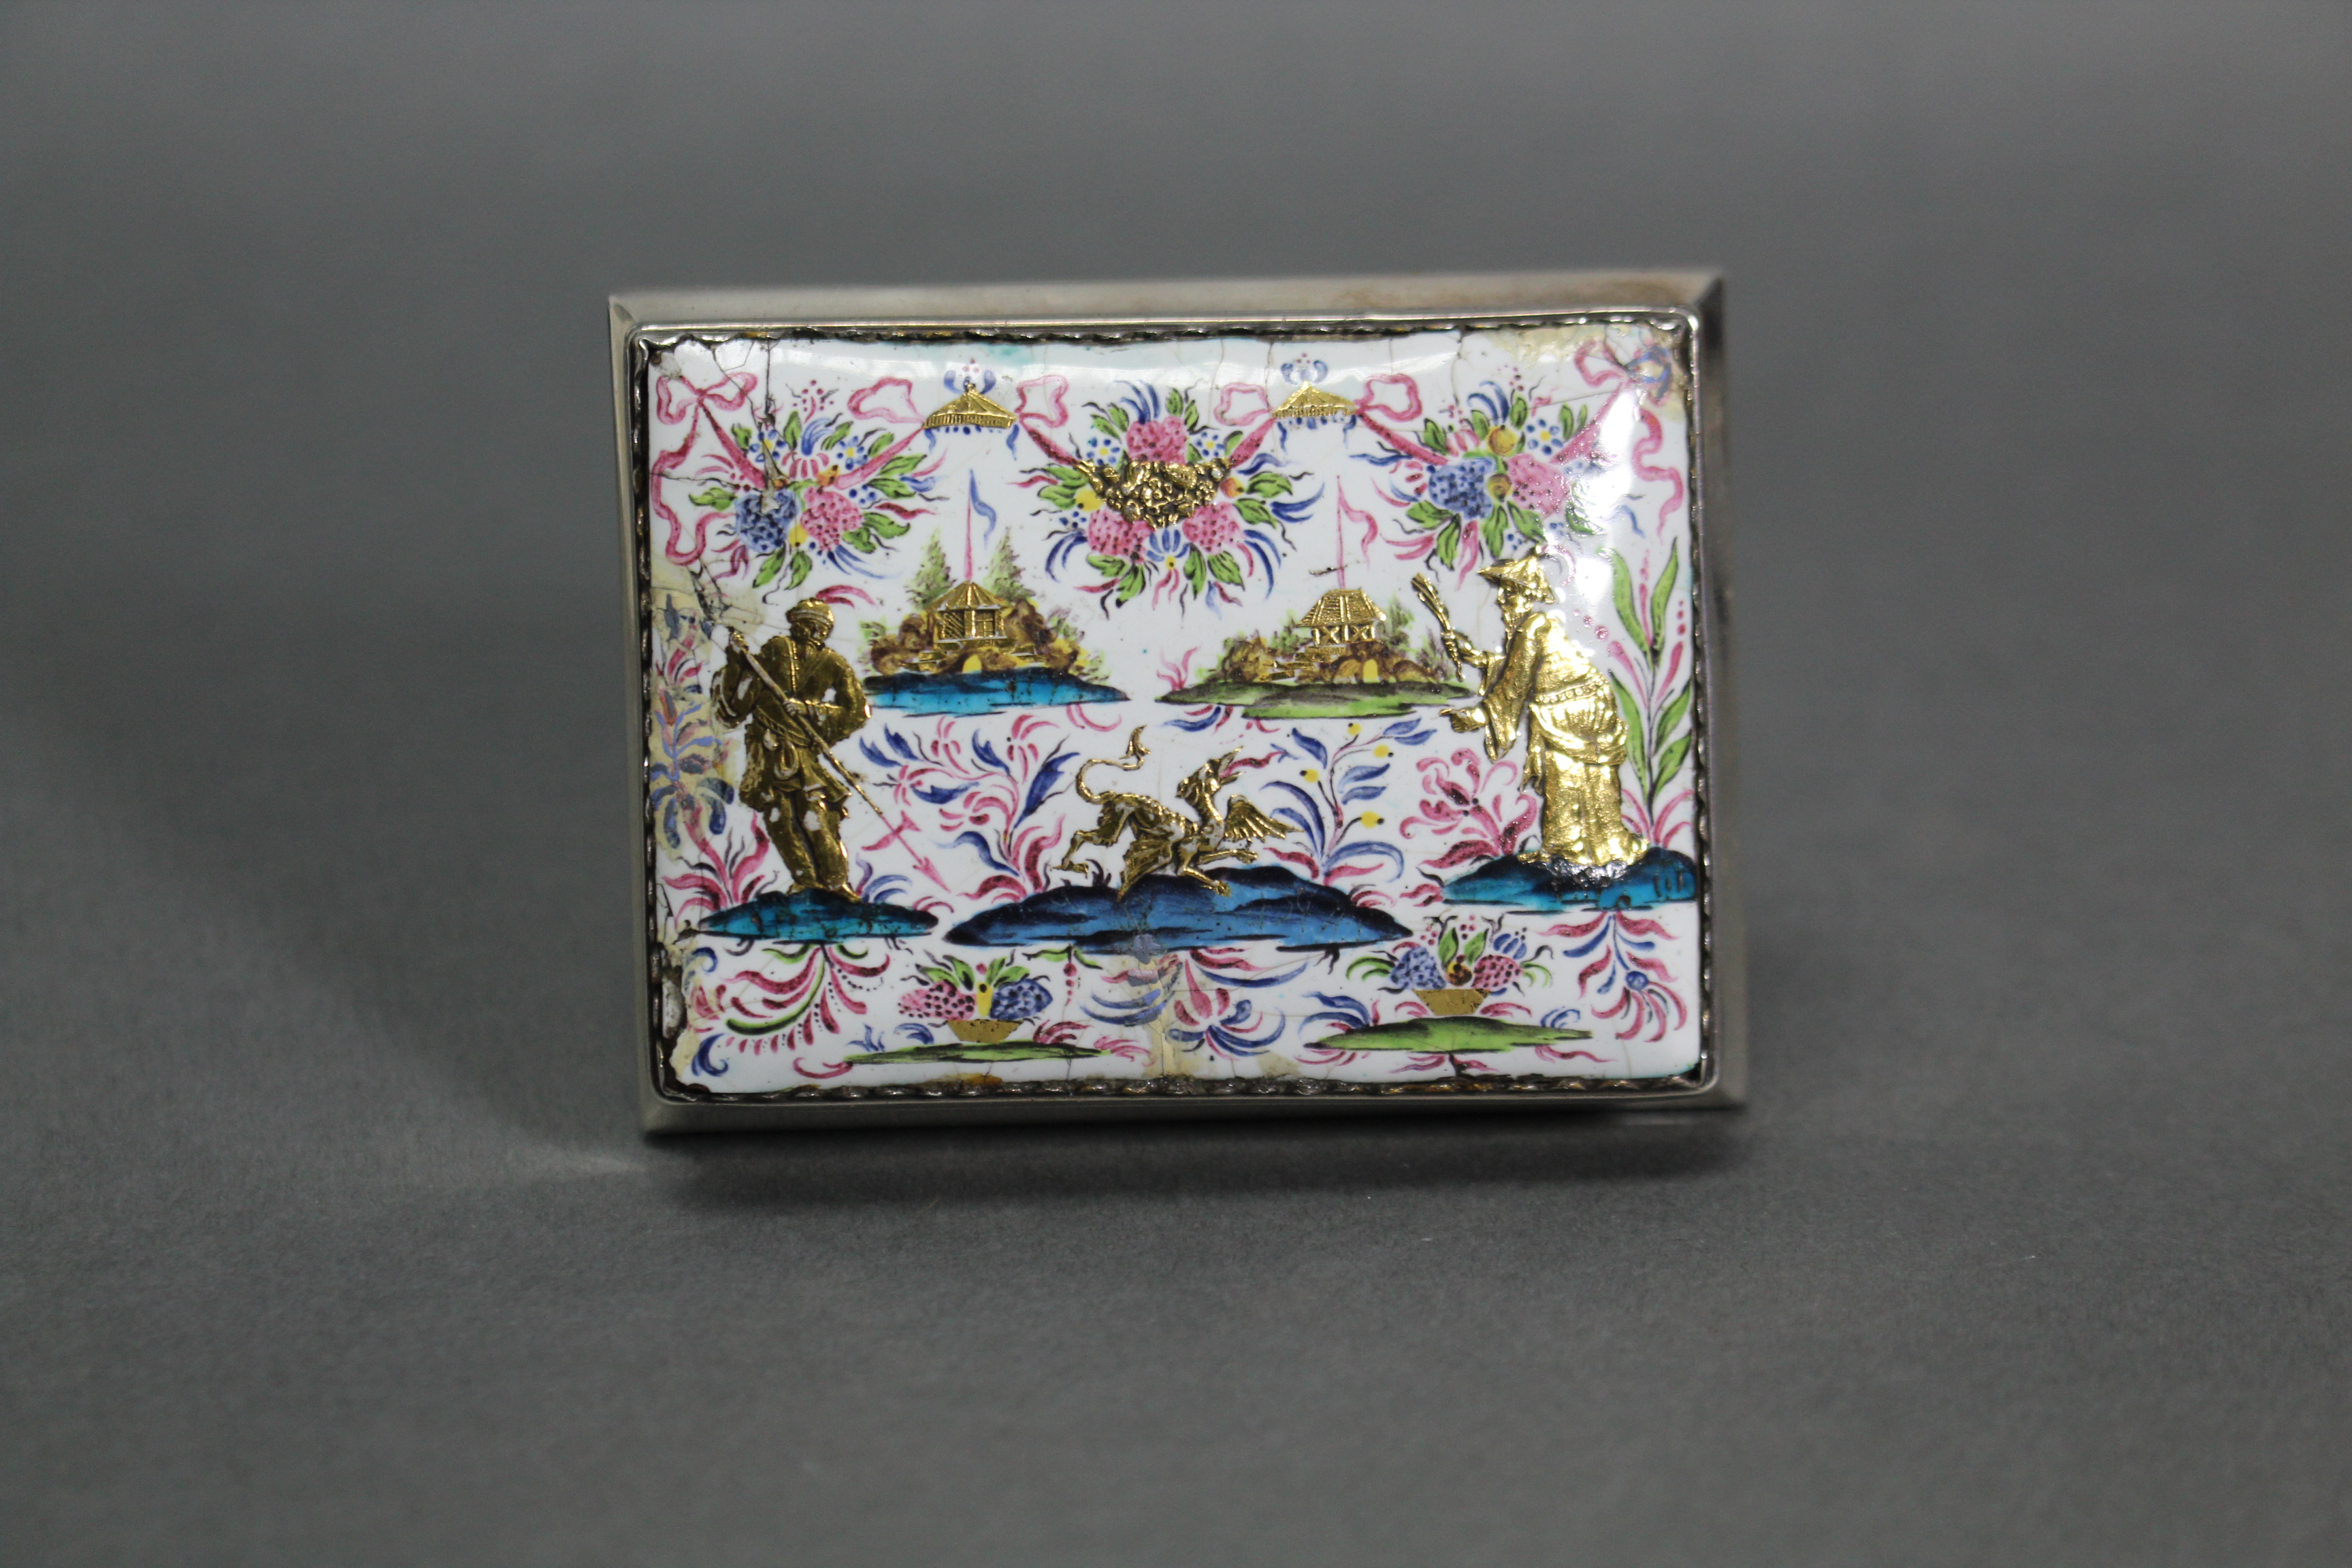 Lot 311 - AN 18th century CONTINENTAL SILVER & ENAMEL SNUFF BOX of rectangular shape with bombe sides, the